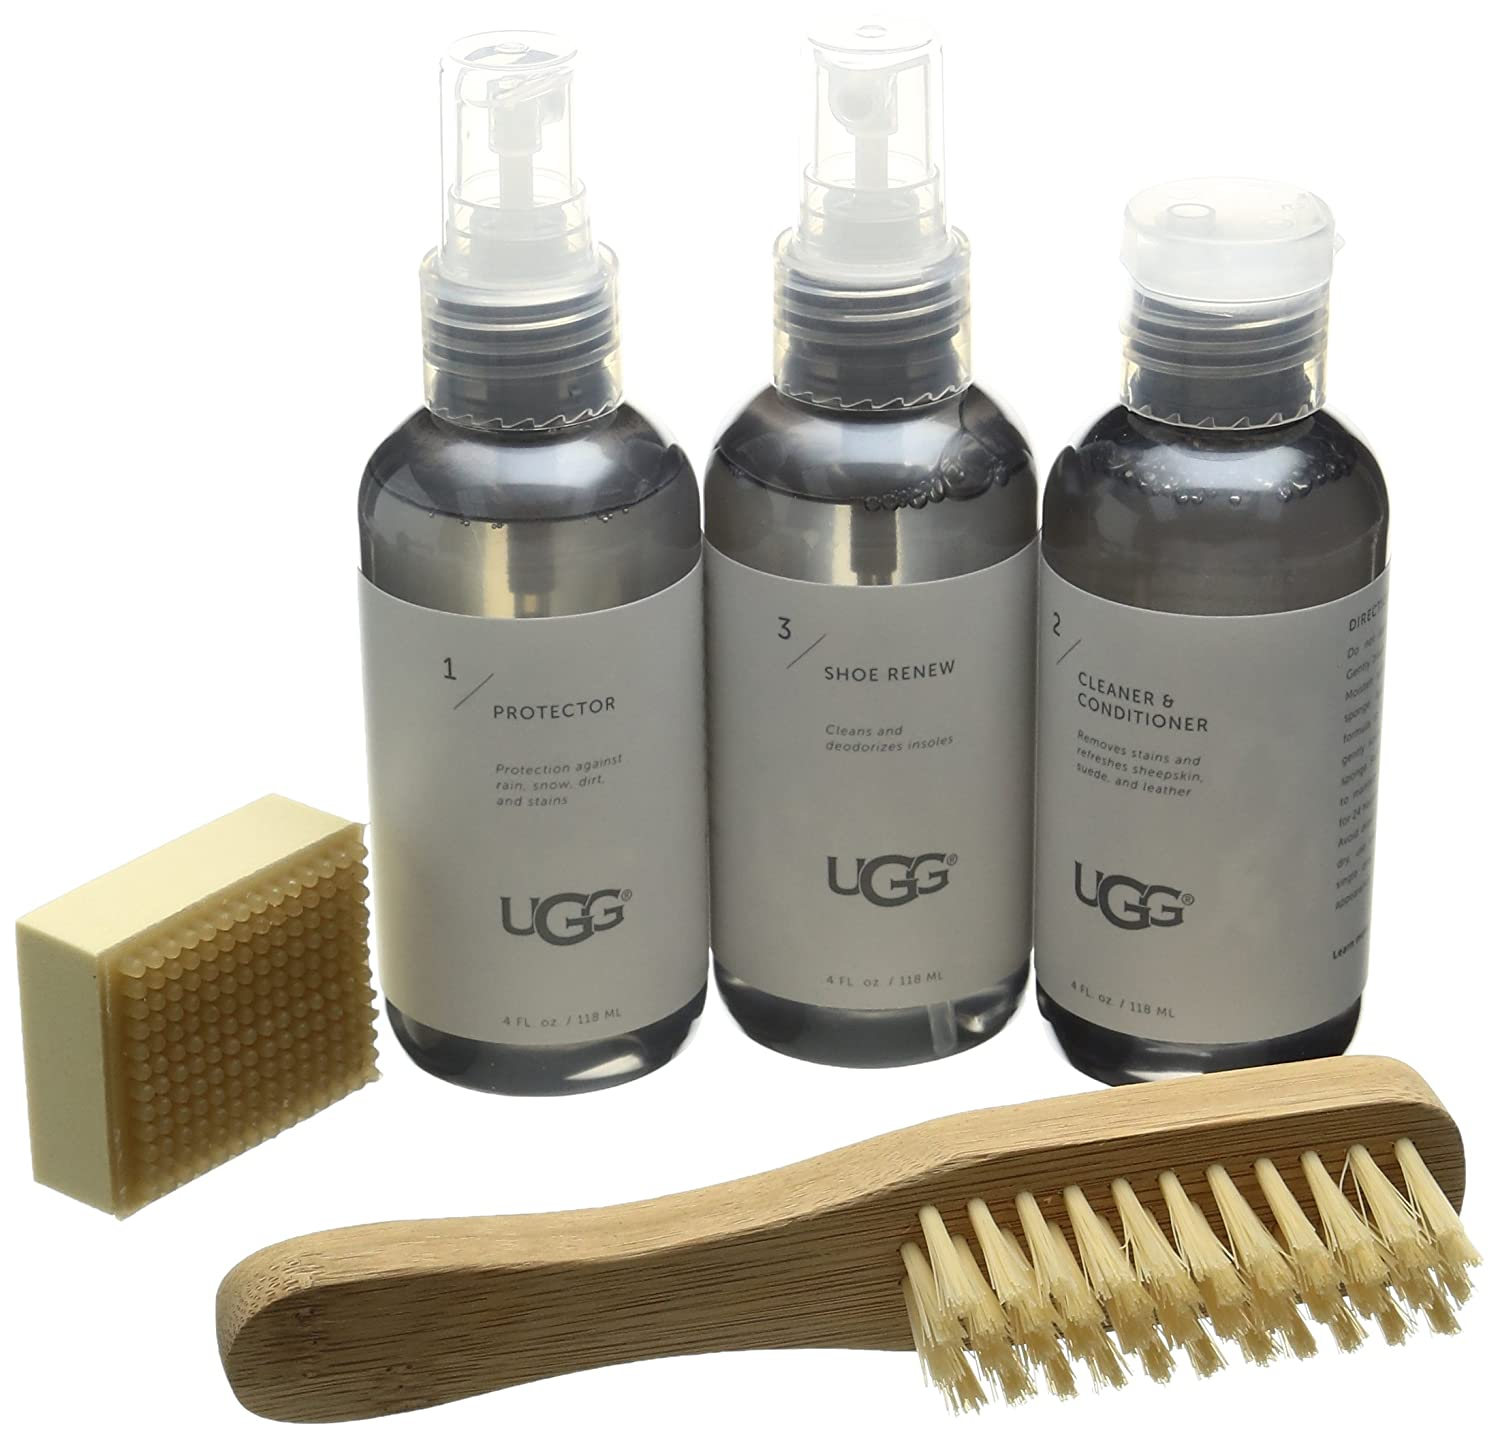 9874b763ce0 UGG Accessories Unisex's UGG Shoe Care Kit